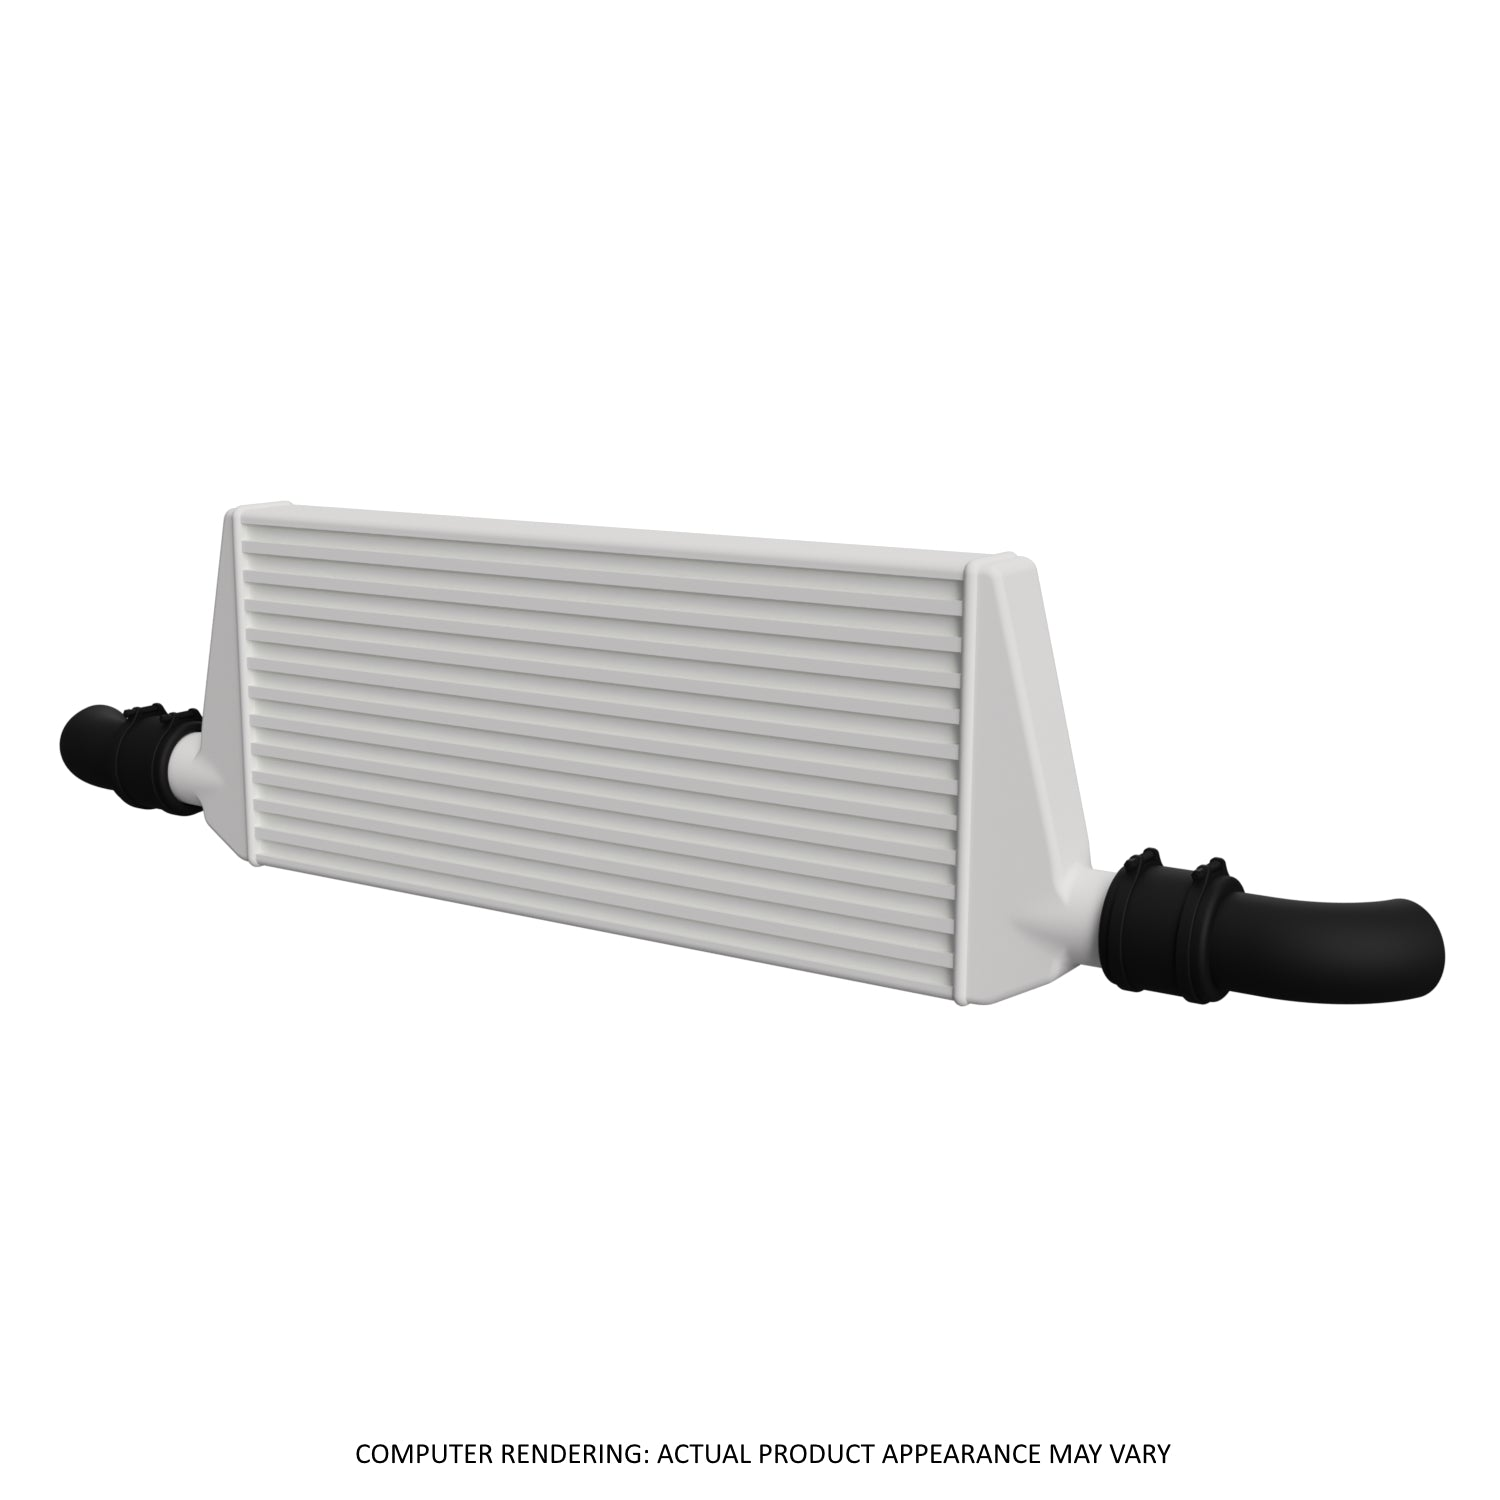 Make It RC LI-1 Intercooler for 1/10 Scale RC Car and Truck